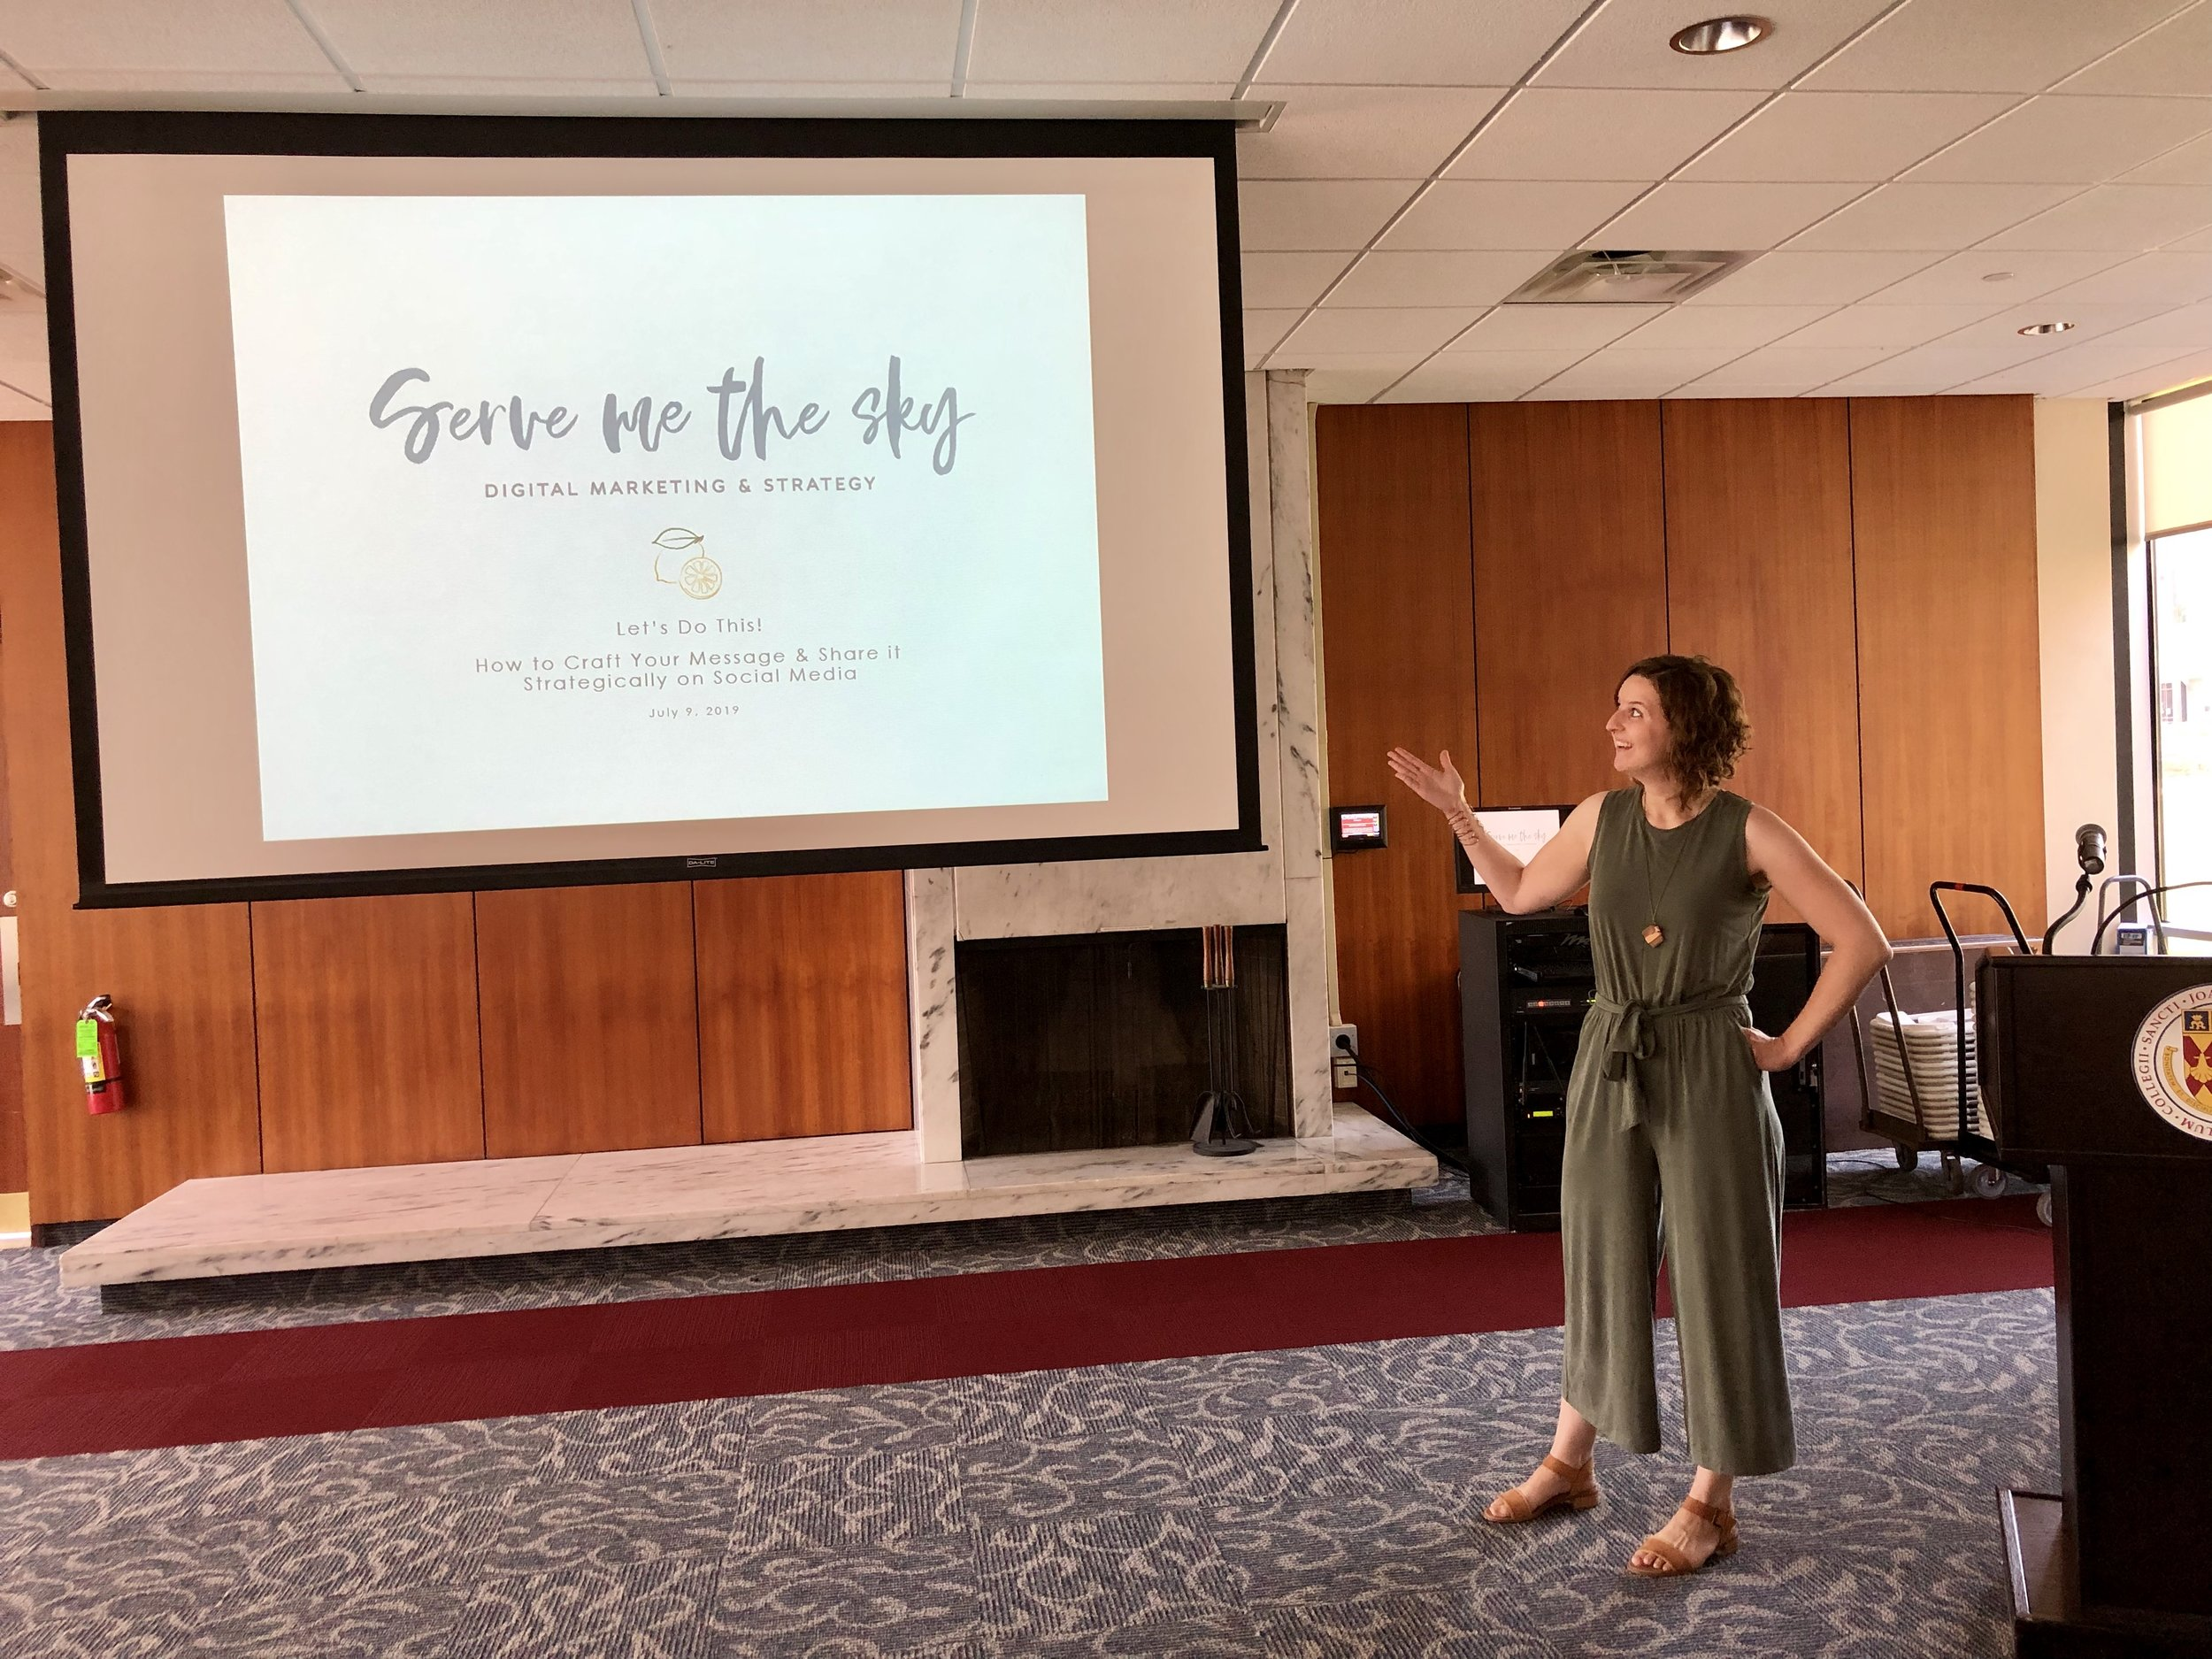 Kicking off my workshop on how to craft your message & share it strategically on social.